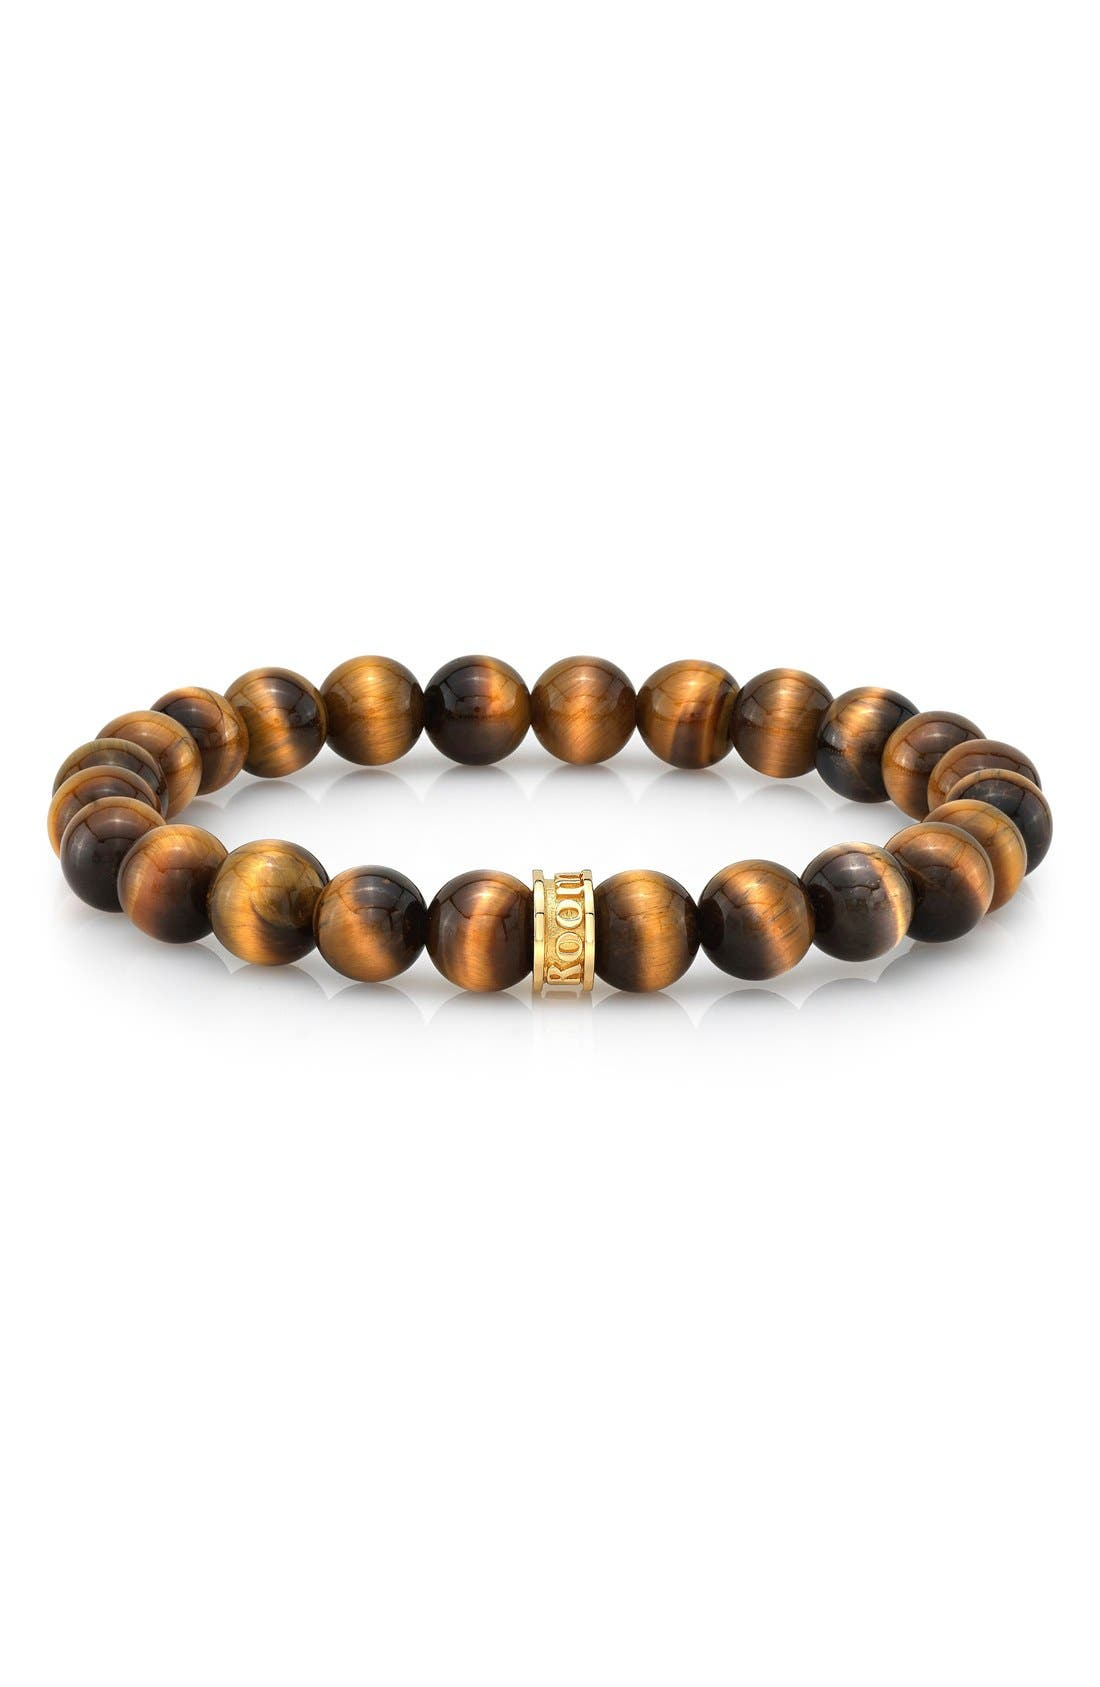 ROOM101 Tigers Eye Bead Bracelet